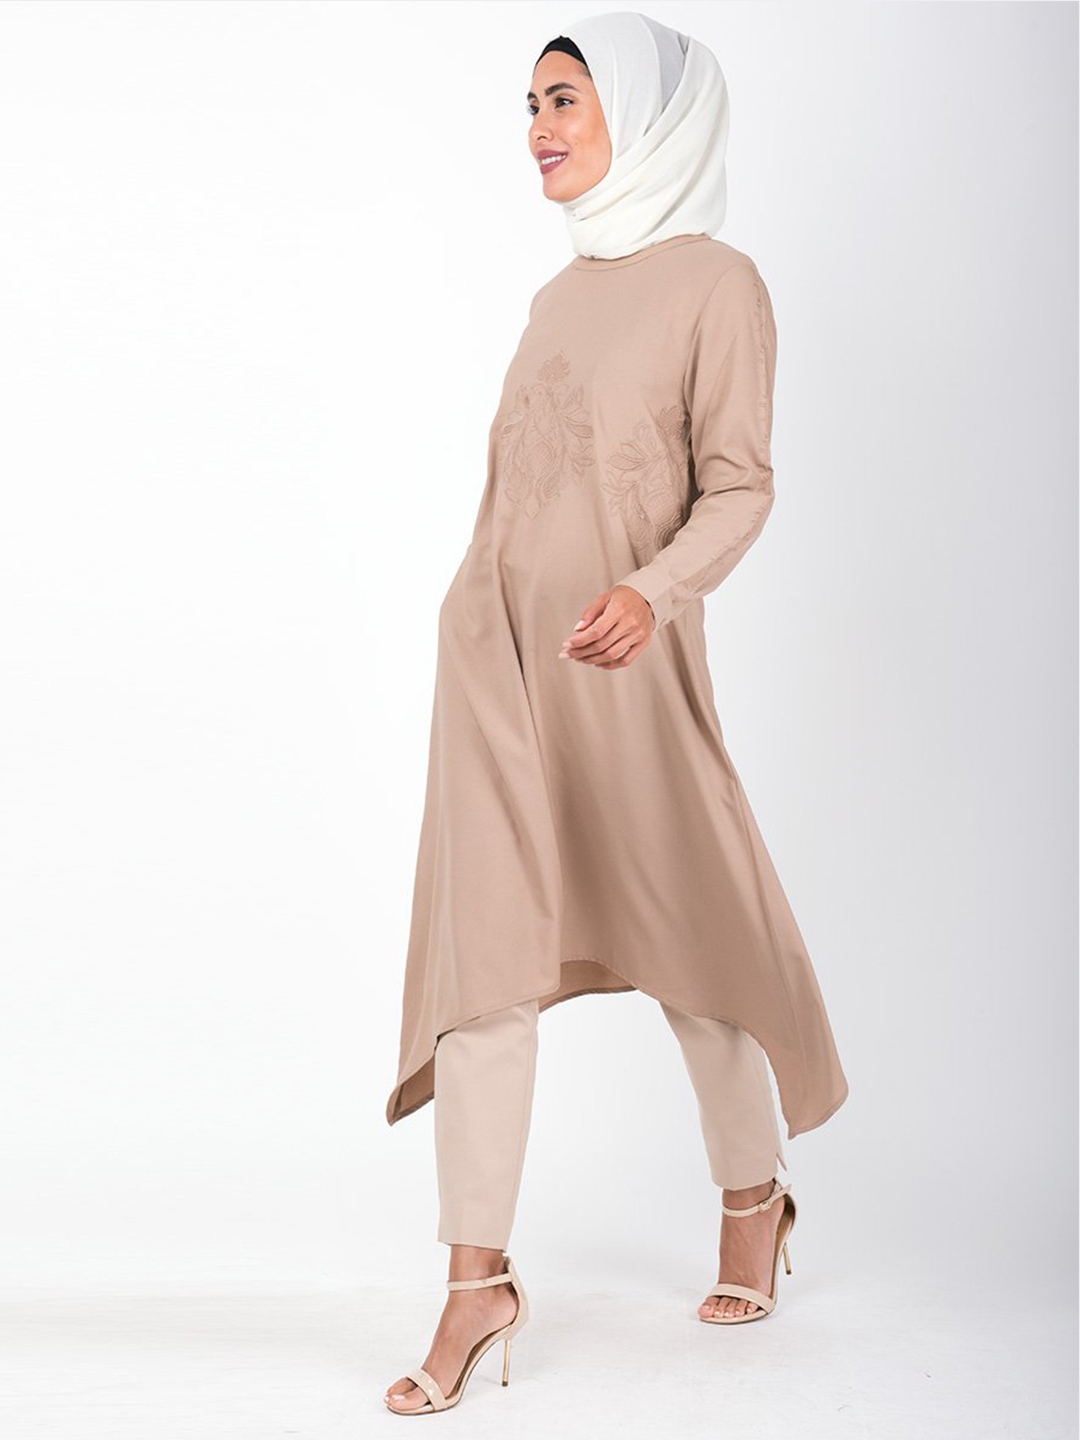 100% Summer Cool Polyester Midi Dress With Handkerchief Embroidered In Beige